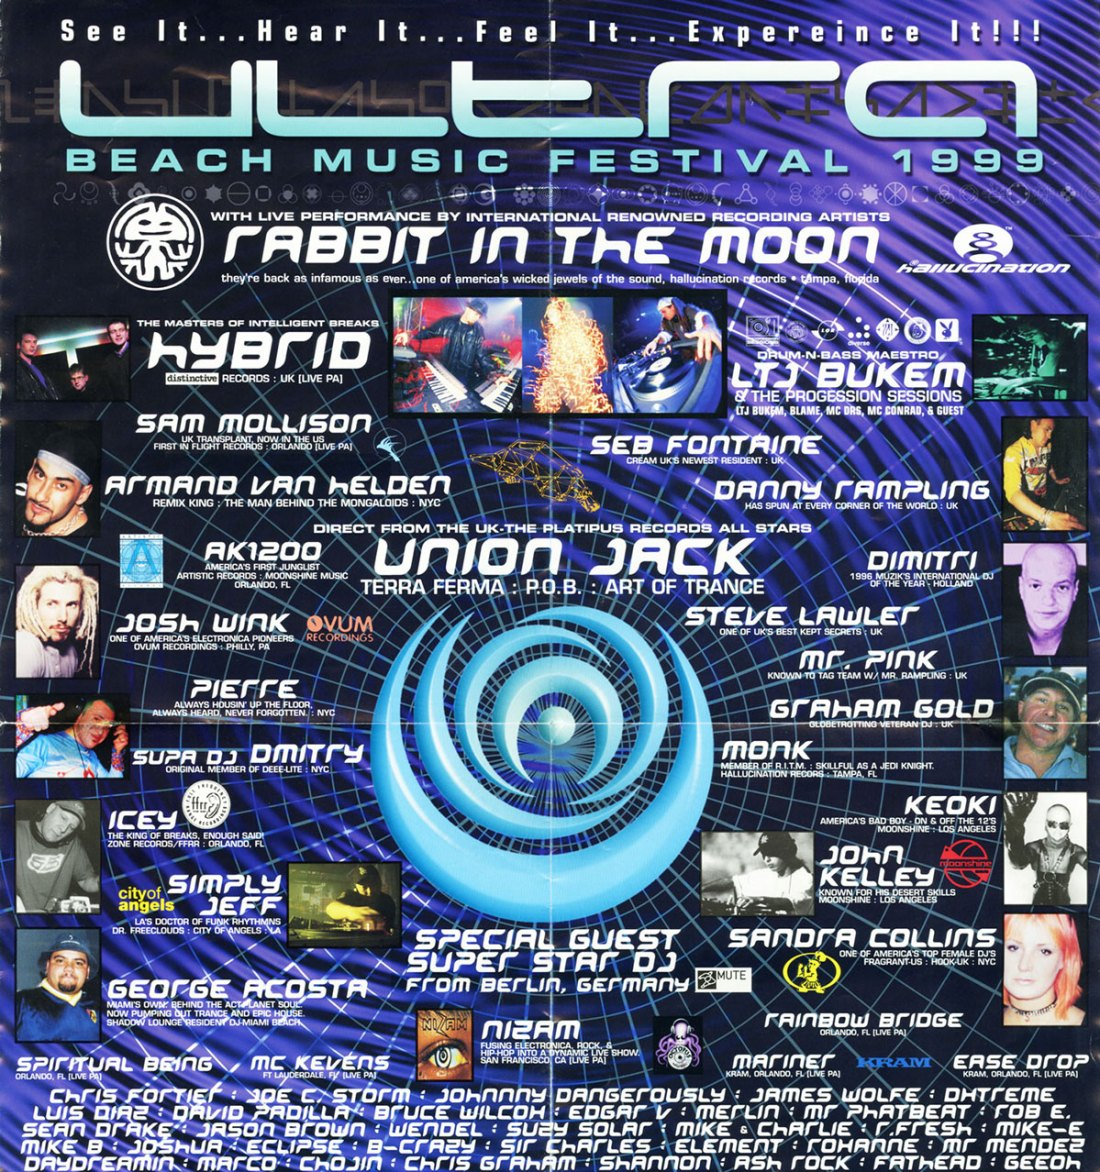 MUST WATCH: Flashback to 1999 with Ultra Miami's throwback footage from the vaultMiami Flyer 1999